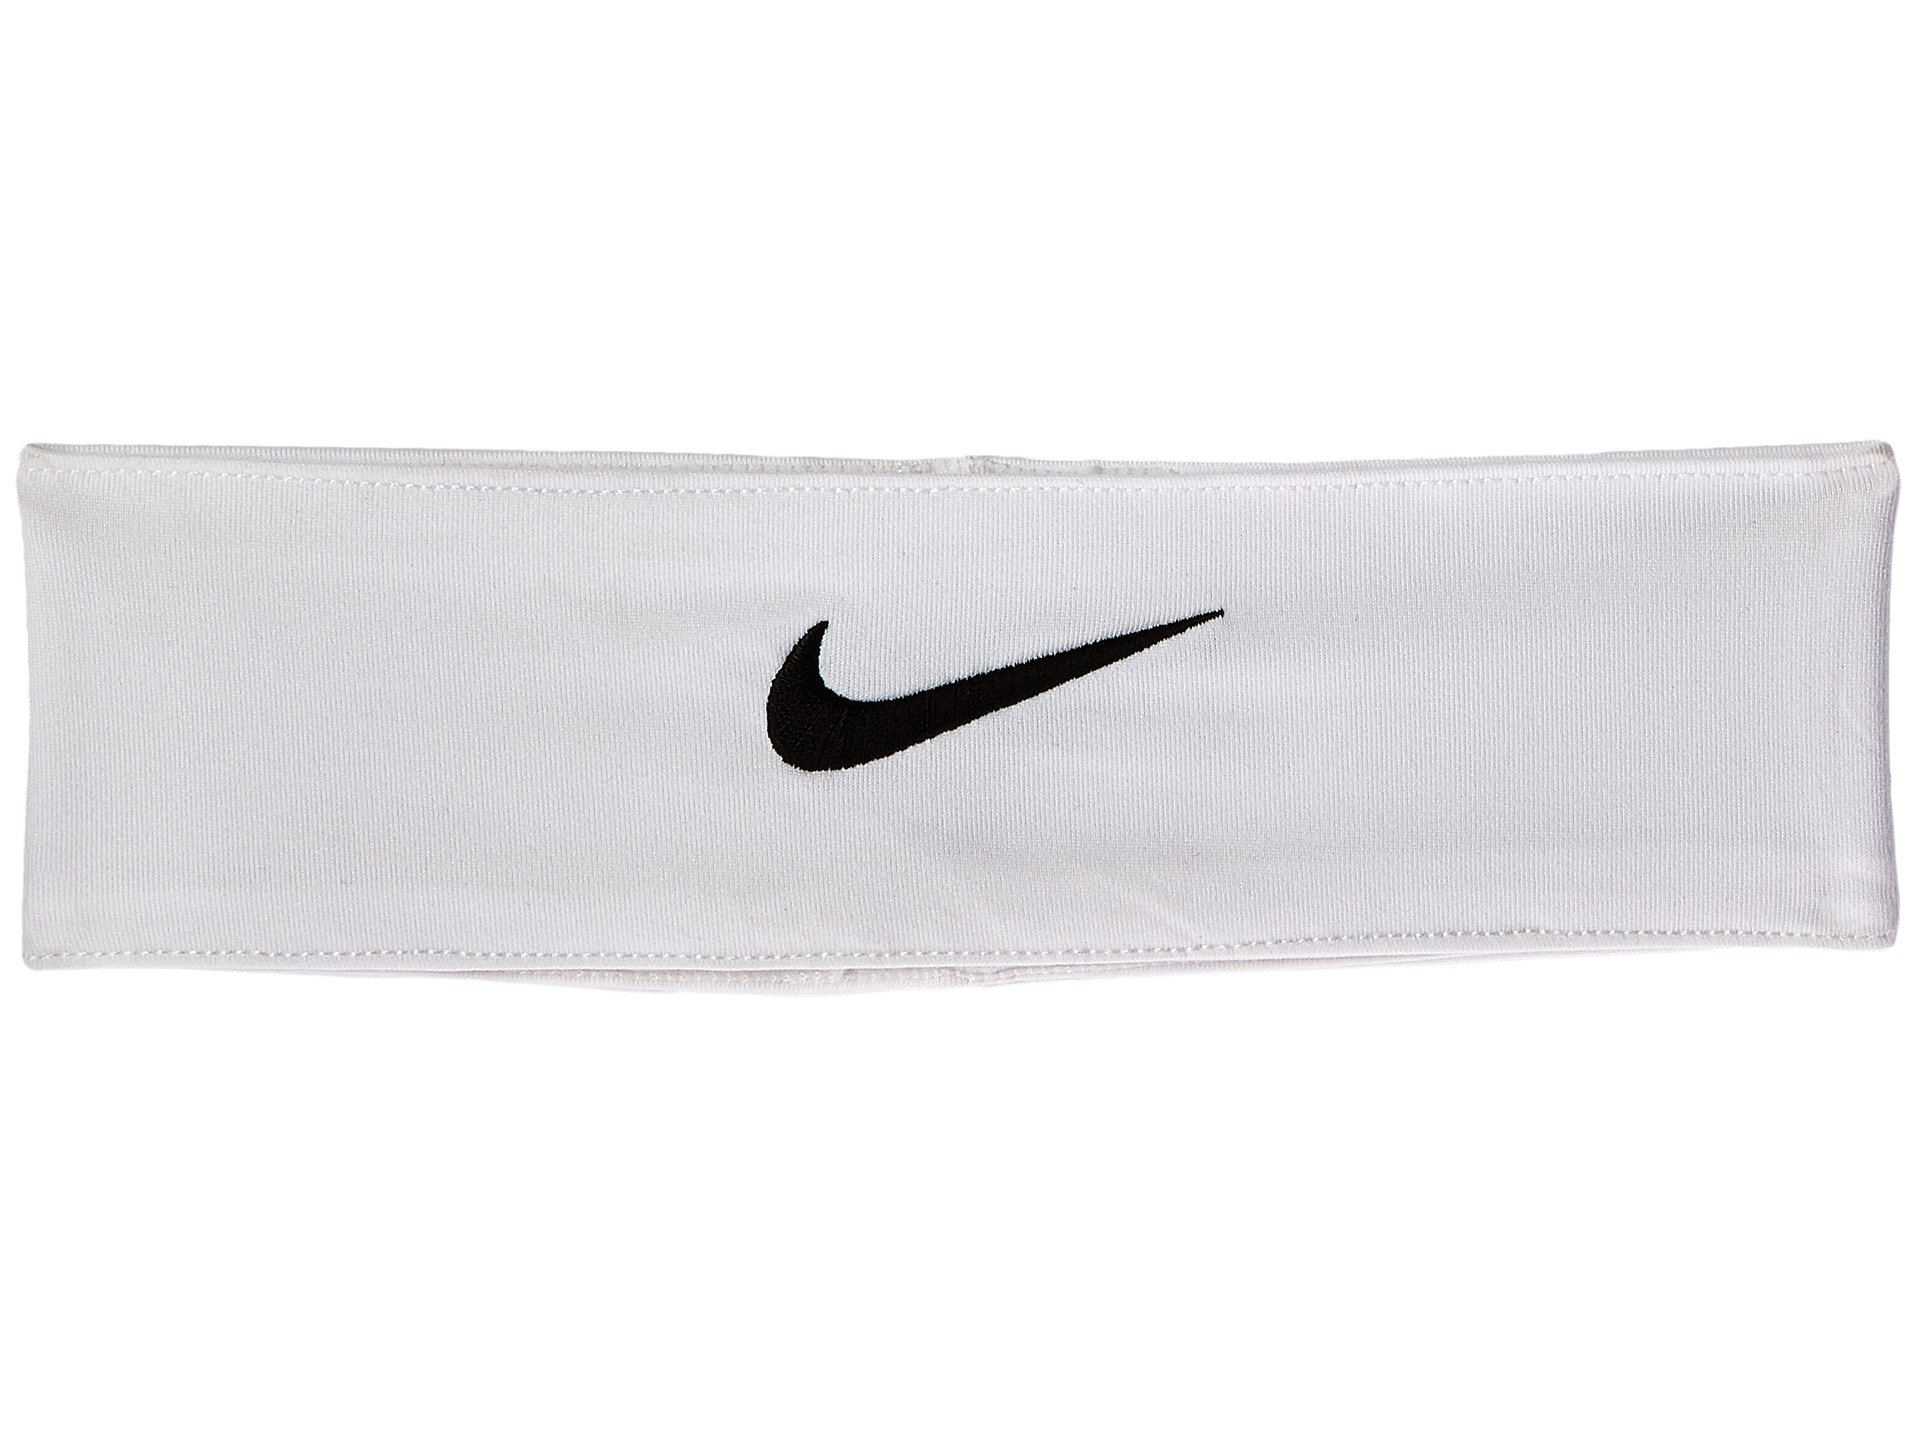 Nike Fury Headband (One Size Fits Most, White/Black) by Nike